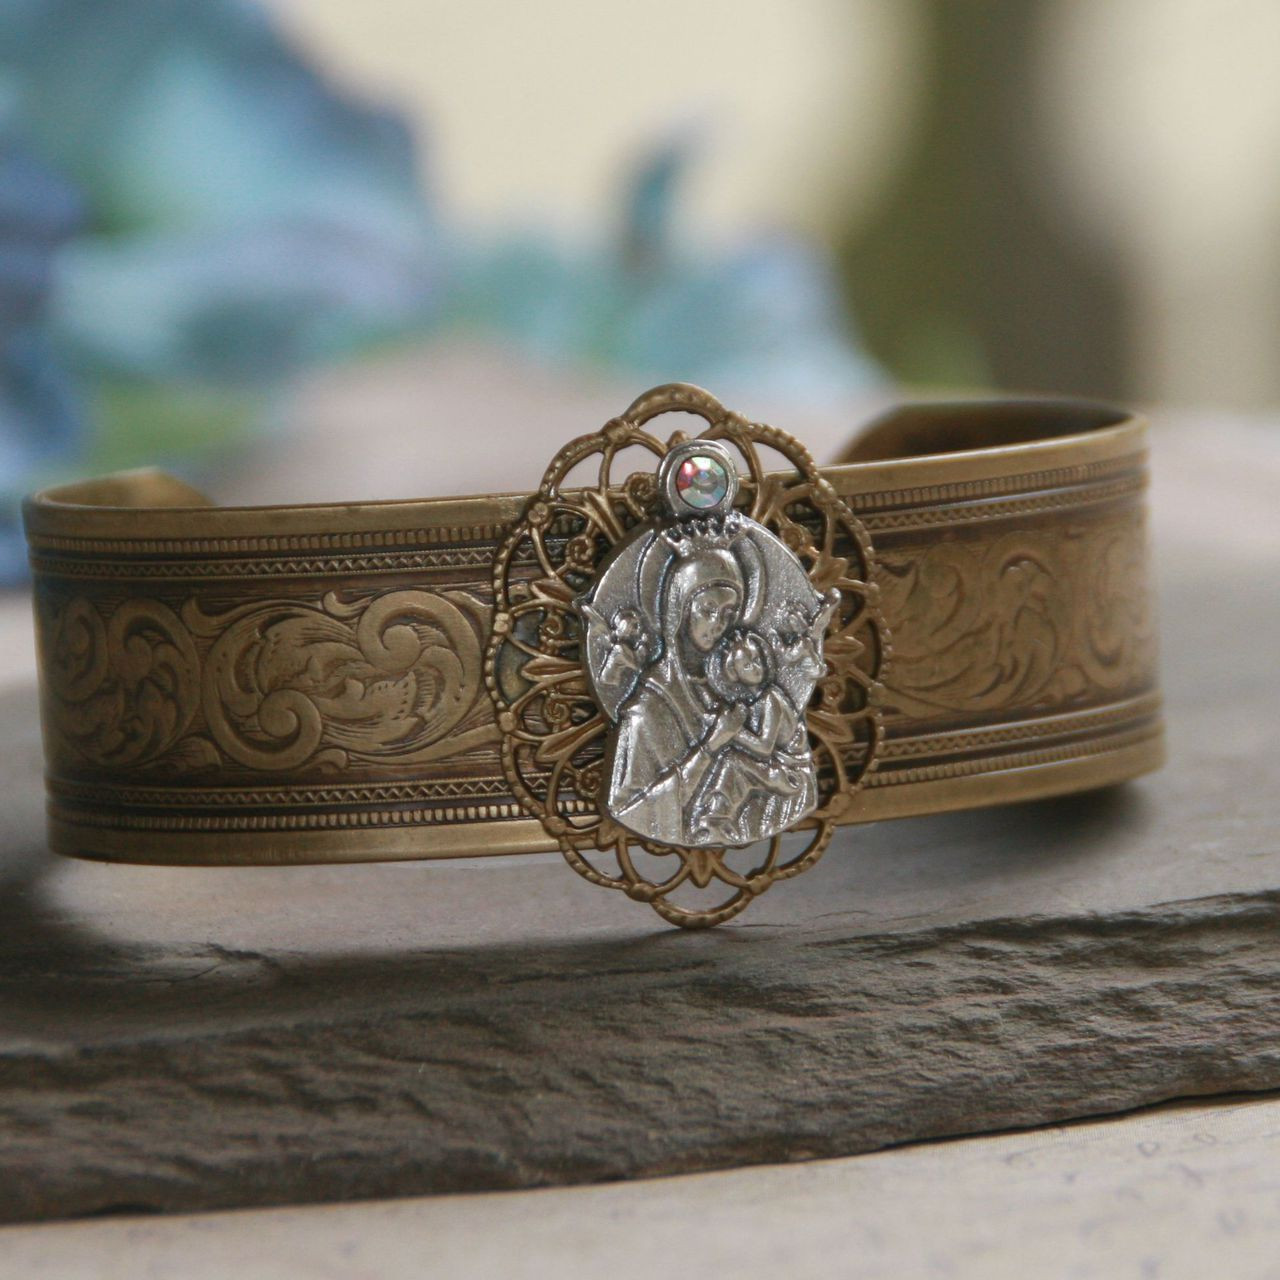 ART-138  Vintage Style Cuff Bracelet with Our Lady of Perpetual Help